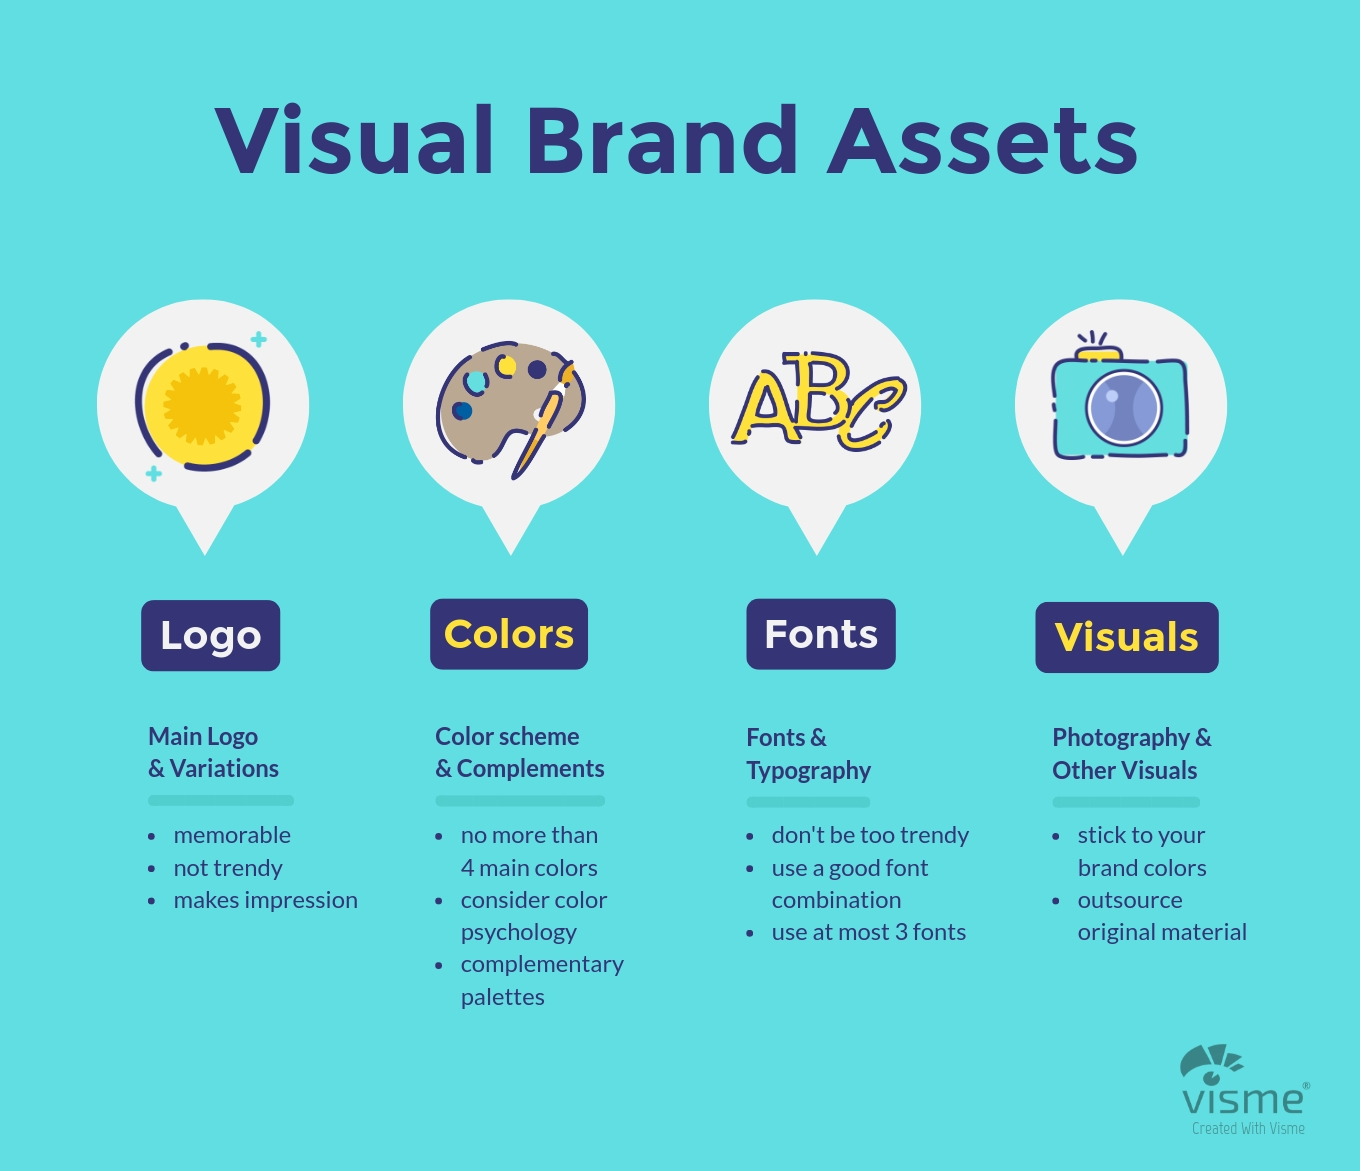 How to Create Branded Social Media Graphics That Will Make Followers Stop and Engage